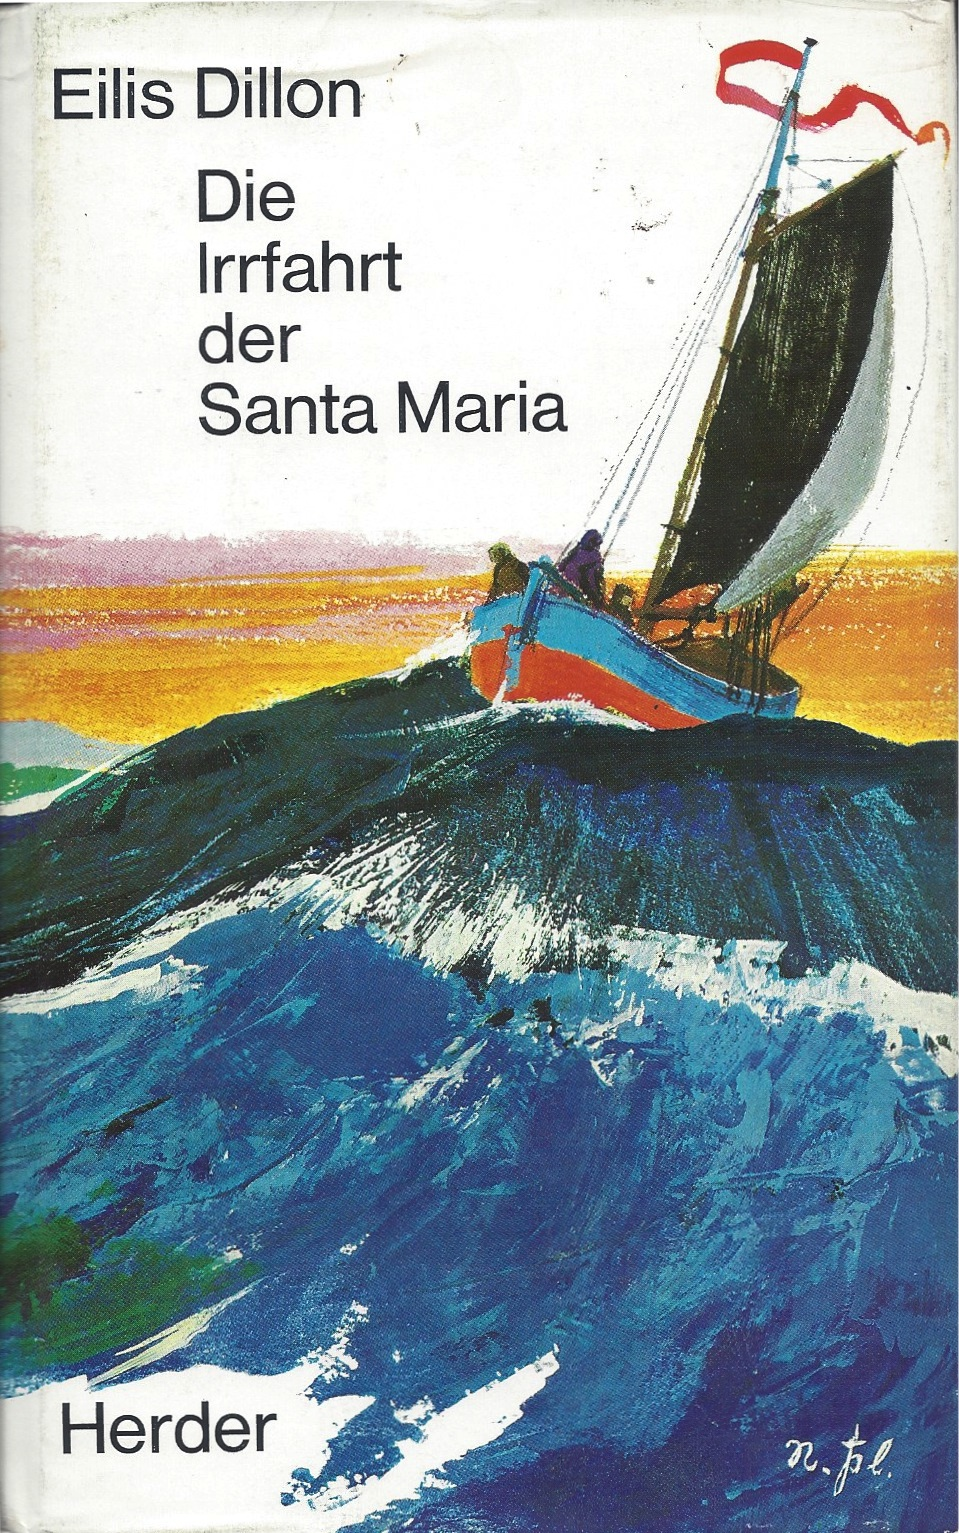 Cruise of Santa Maria, German edition